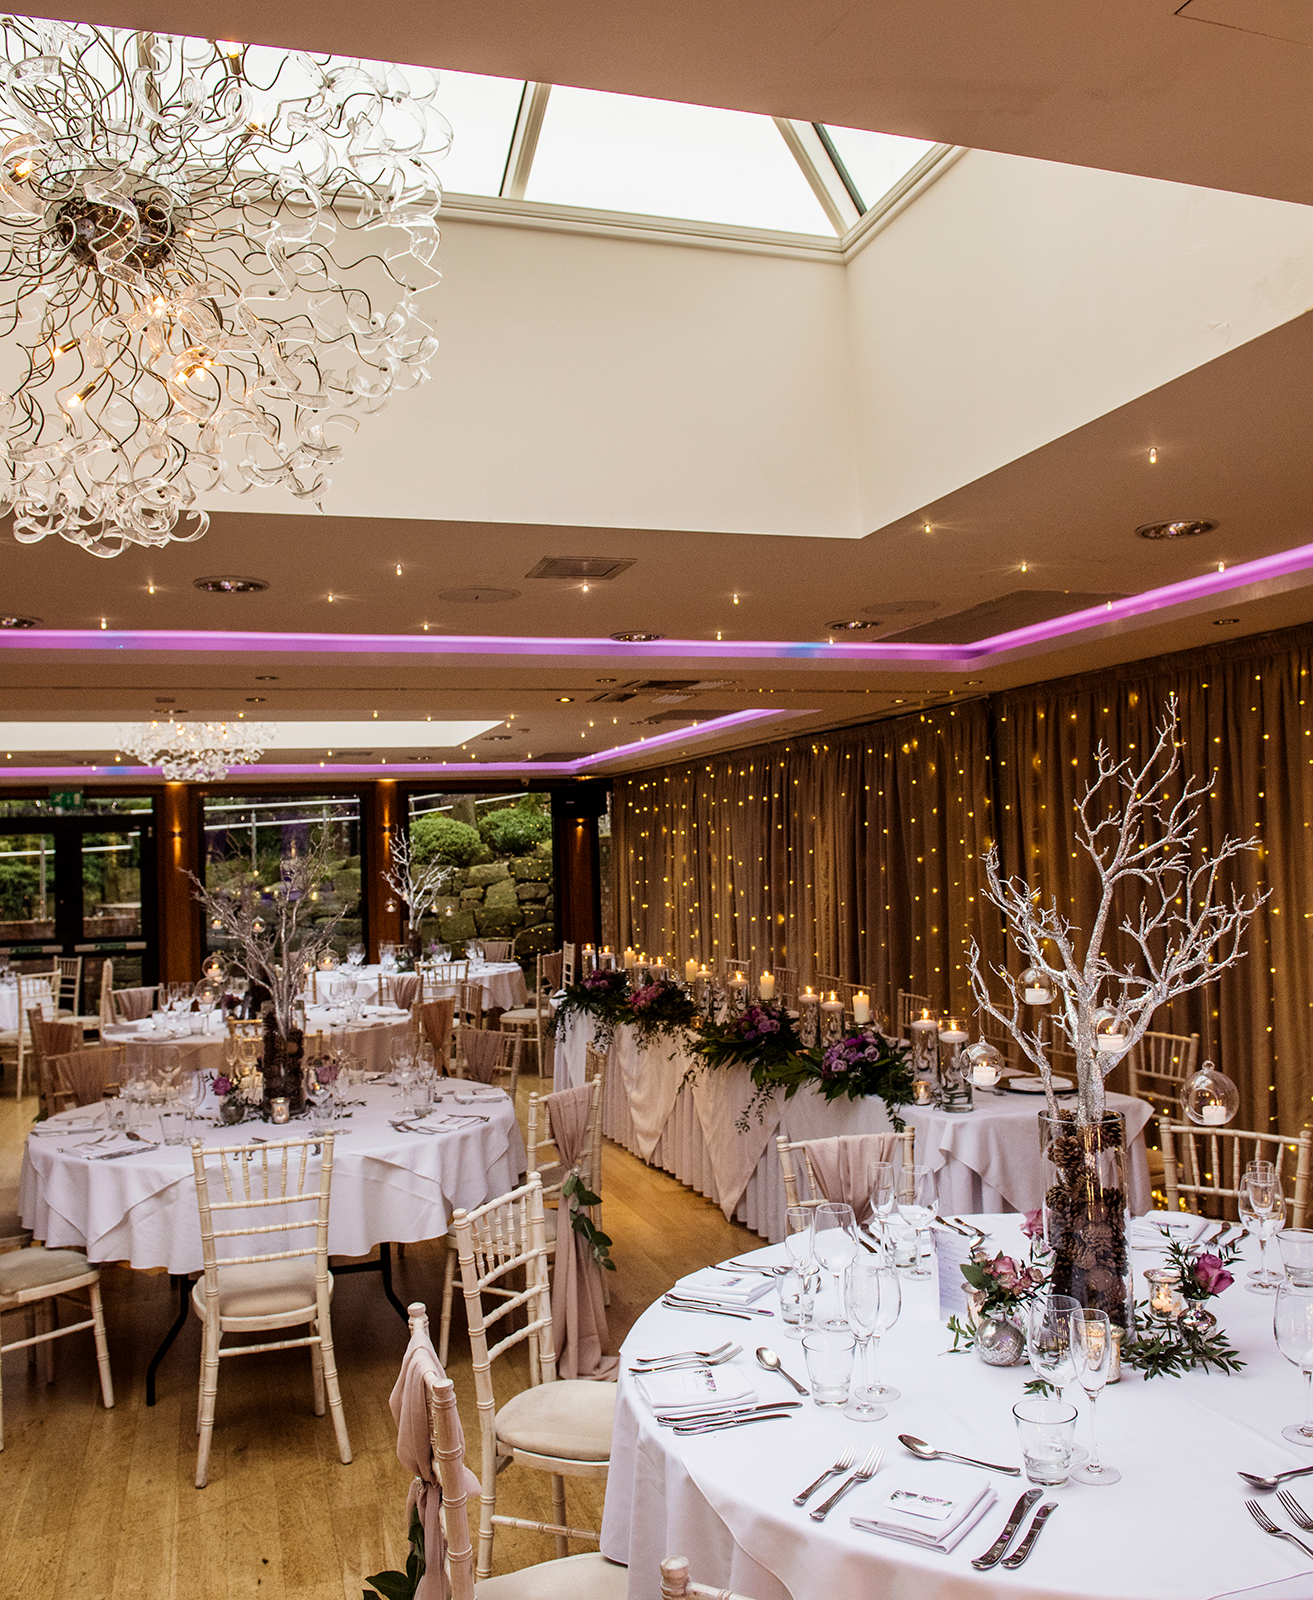 Venue Hire For Weddings In Staffordshire (With Images